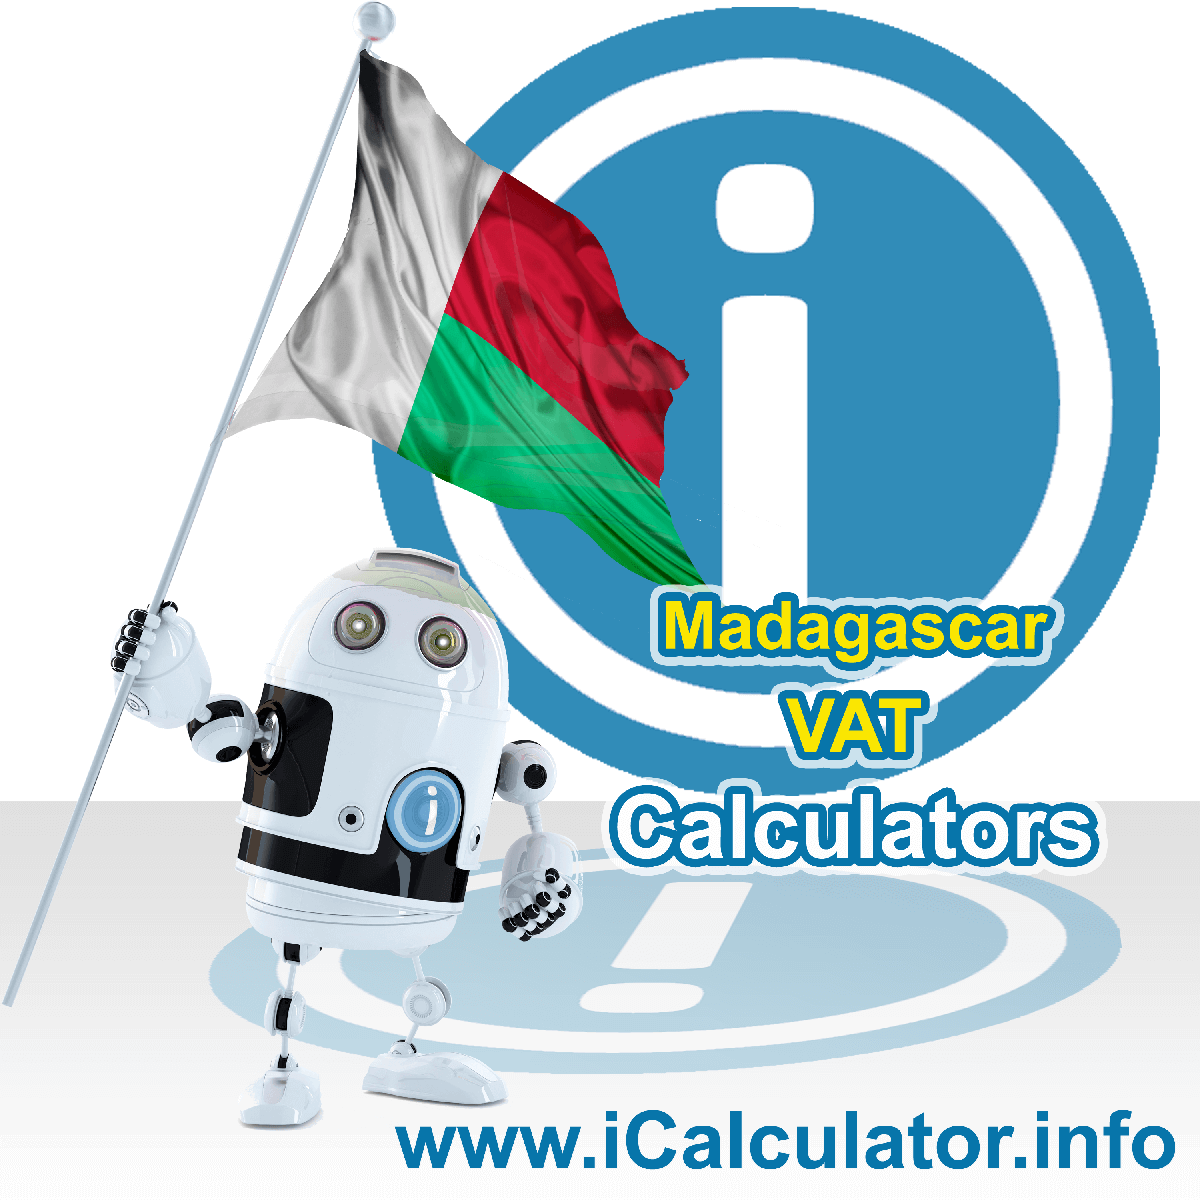 Madagascar VAT Calculator. This image shows the Madagascar flag and information relating to the VAT formula used for calculating Value Added Tax in Madagascar using the Madagascar VAT Calculator in 2020